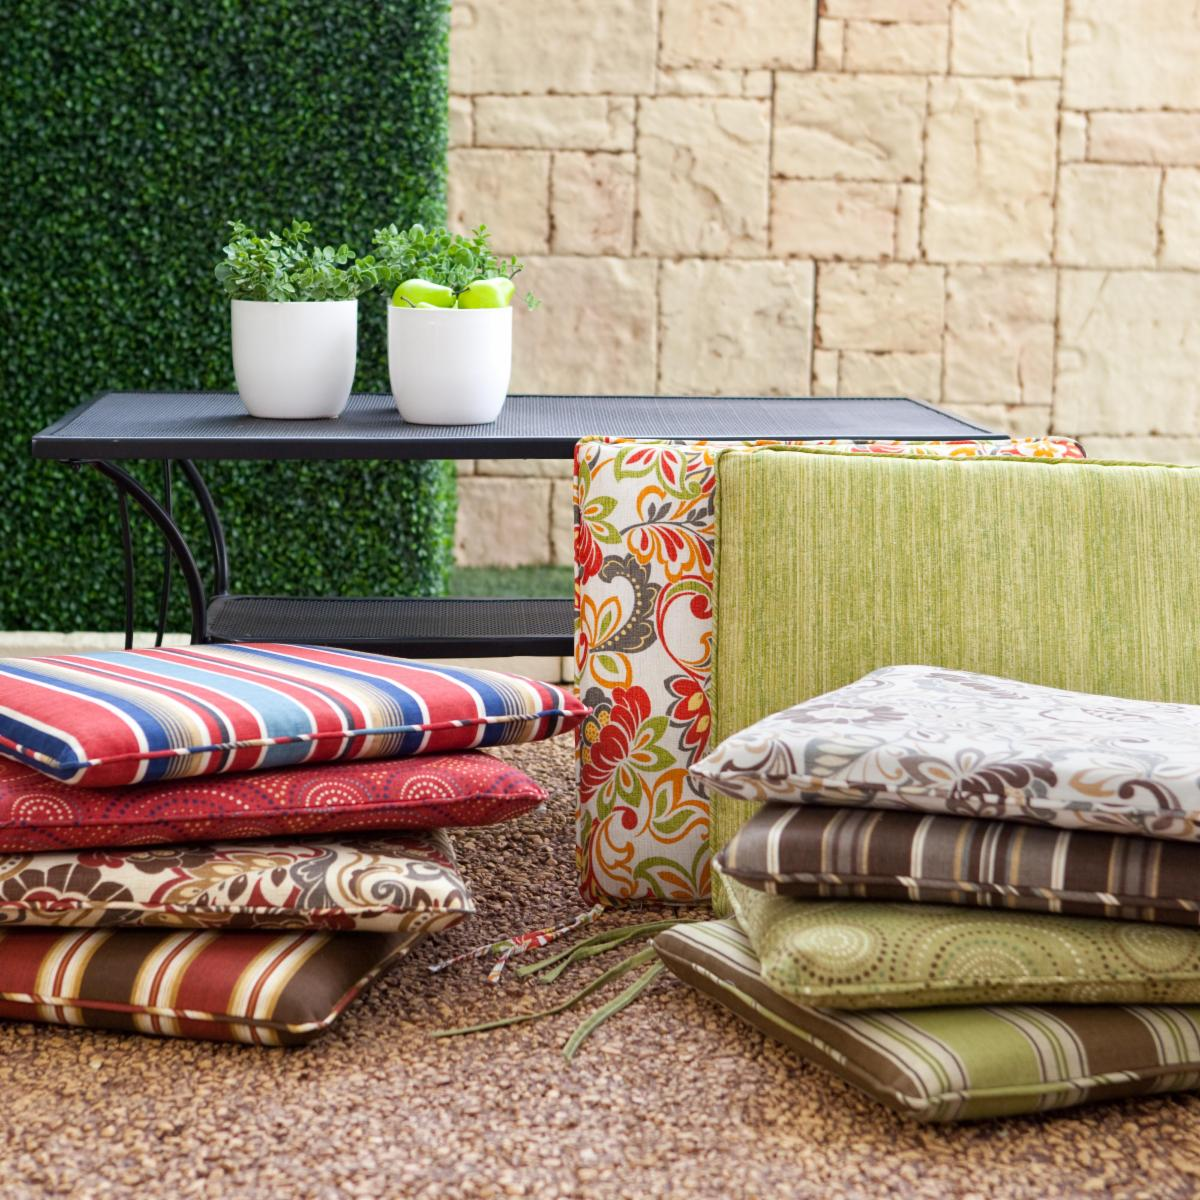 You Deserve It 21 X 19 Outdoor Furniture Seat Pad Cushions